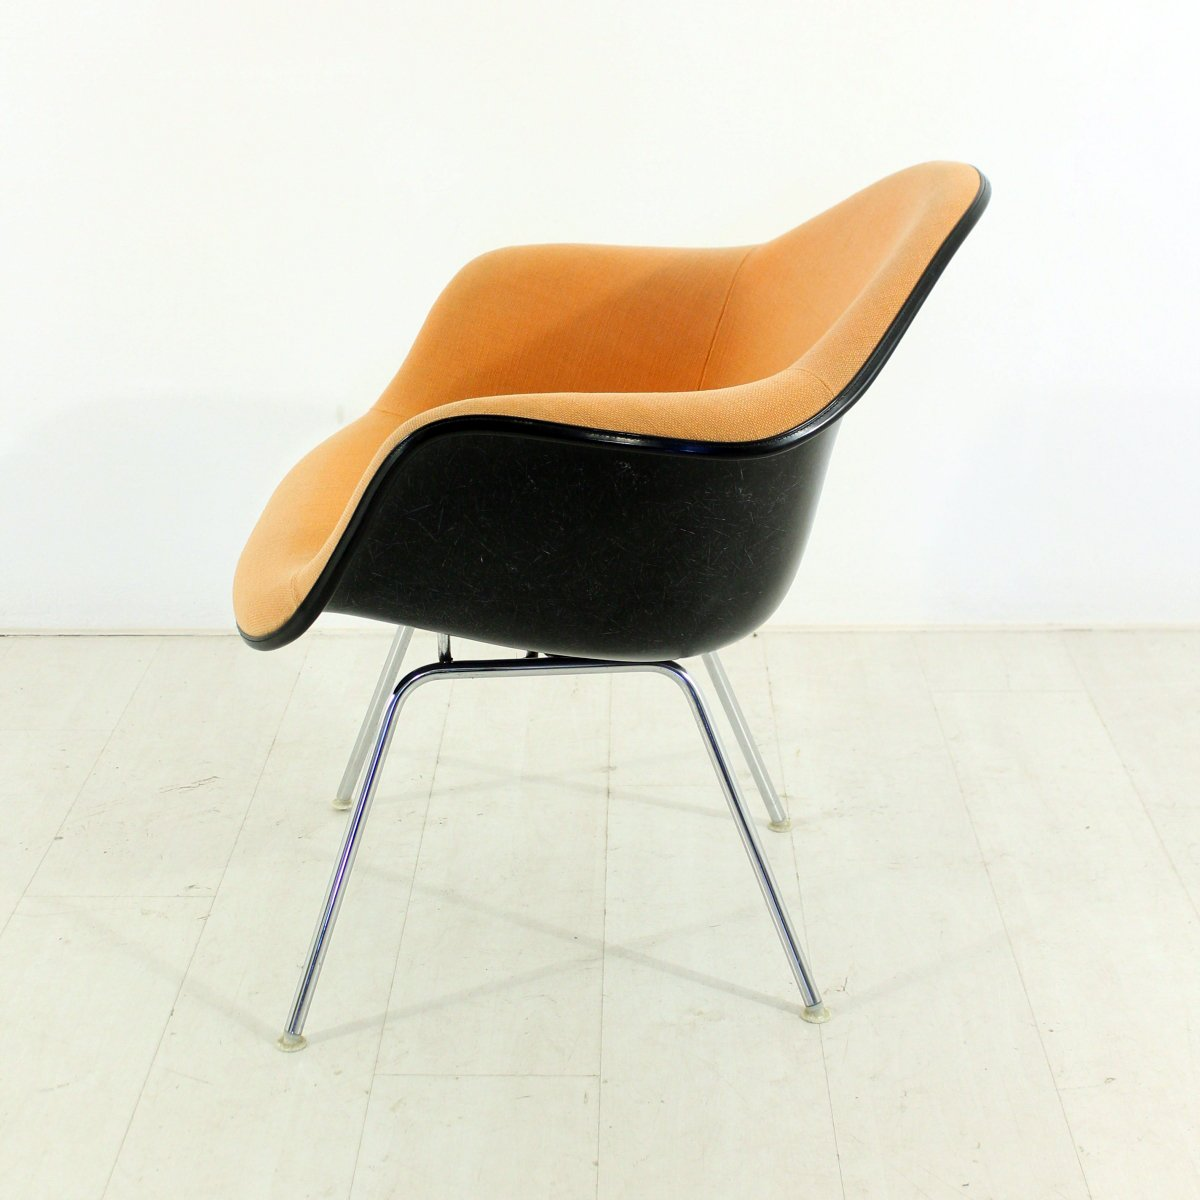 Vintage Lounge Chair in Terracotta by Charles & Ray Eames for Herman Mill